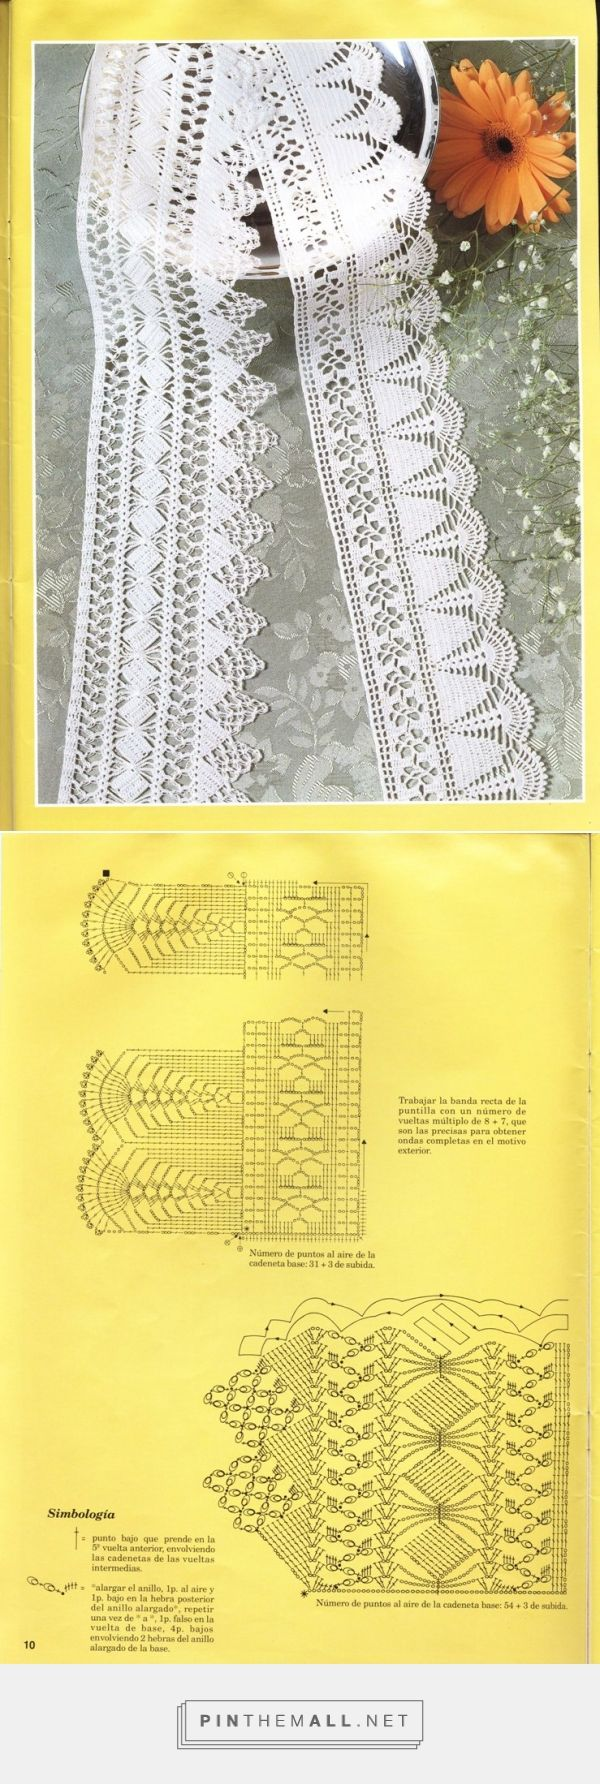 Wide crochet lace edgings: deep shell with interlaced diamonds; oblique blocks with Solomon's Knot points.